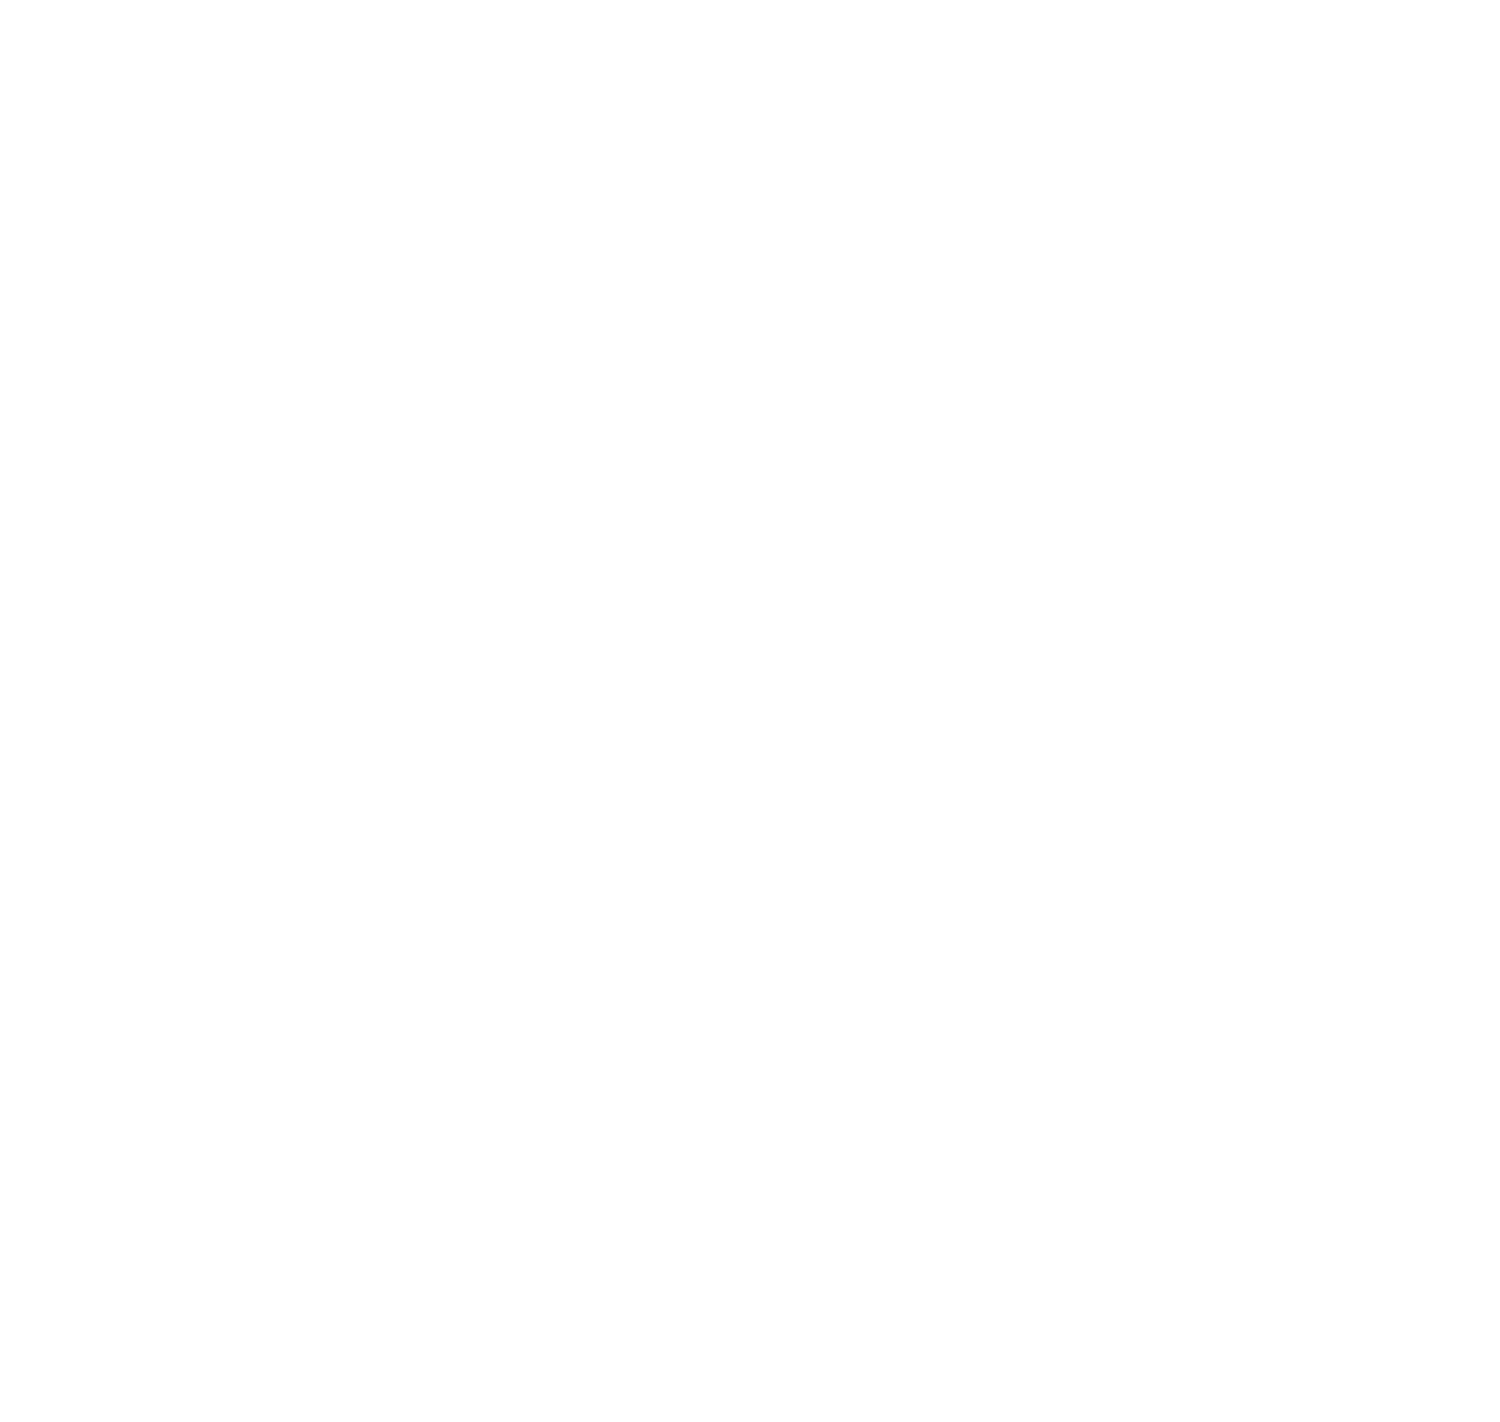 Time and Space Garden and Planting Design